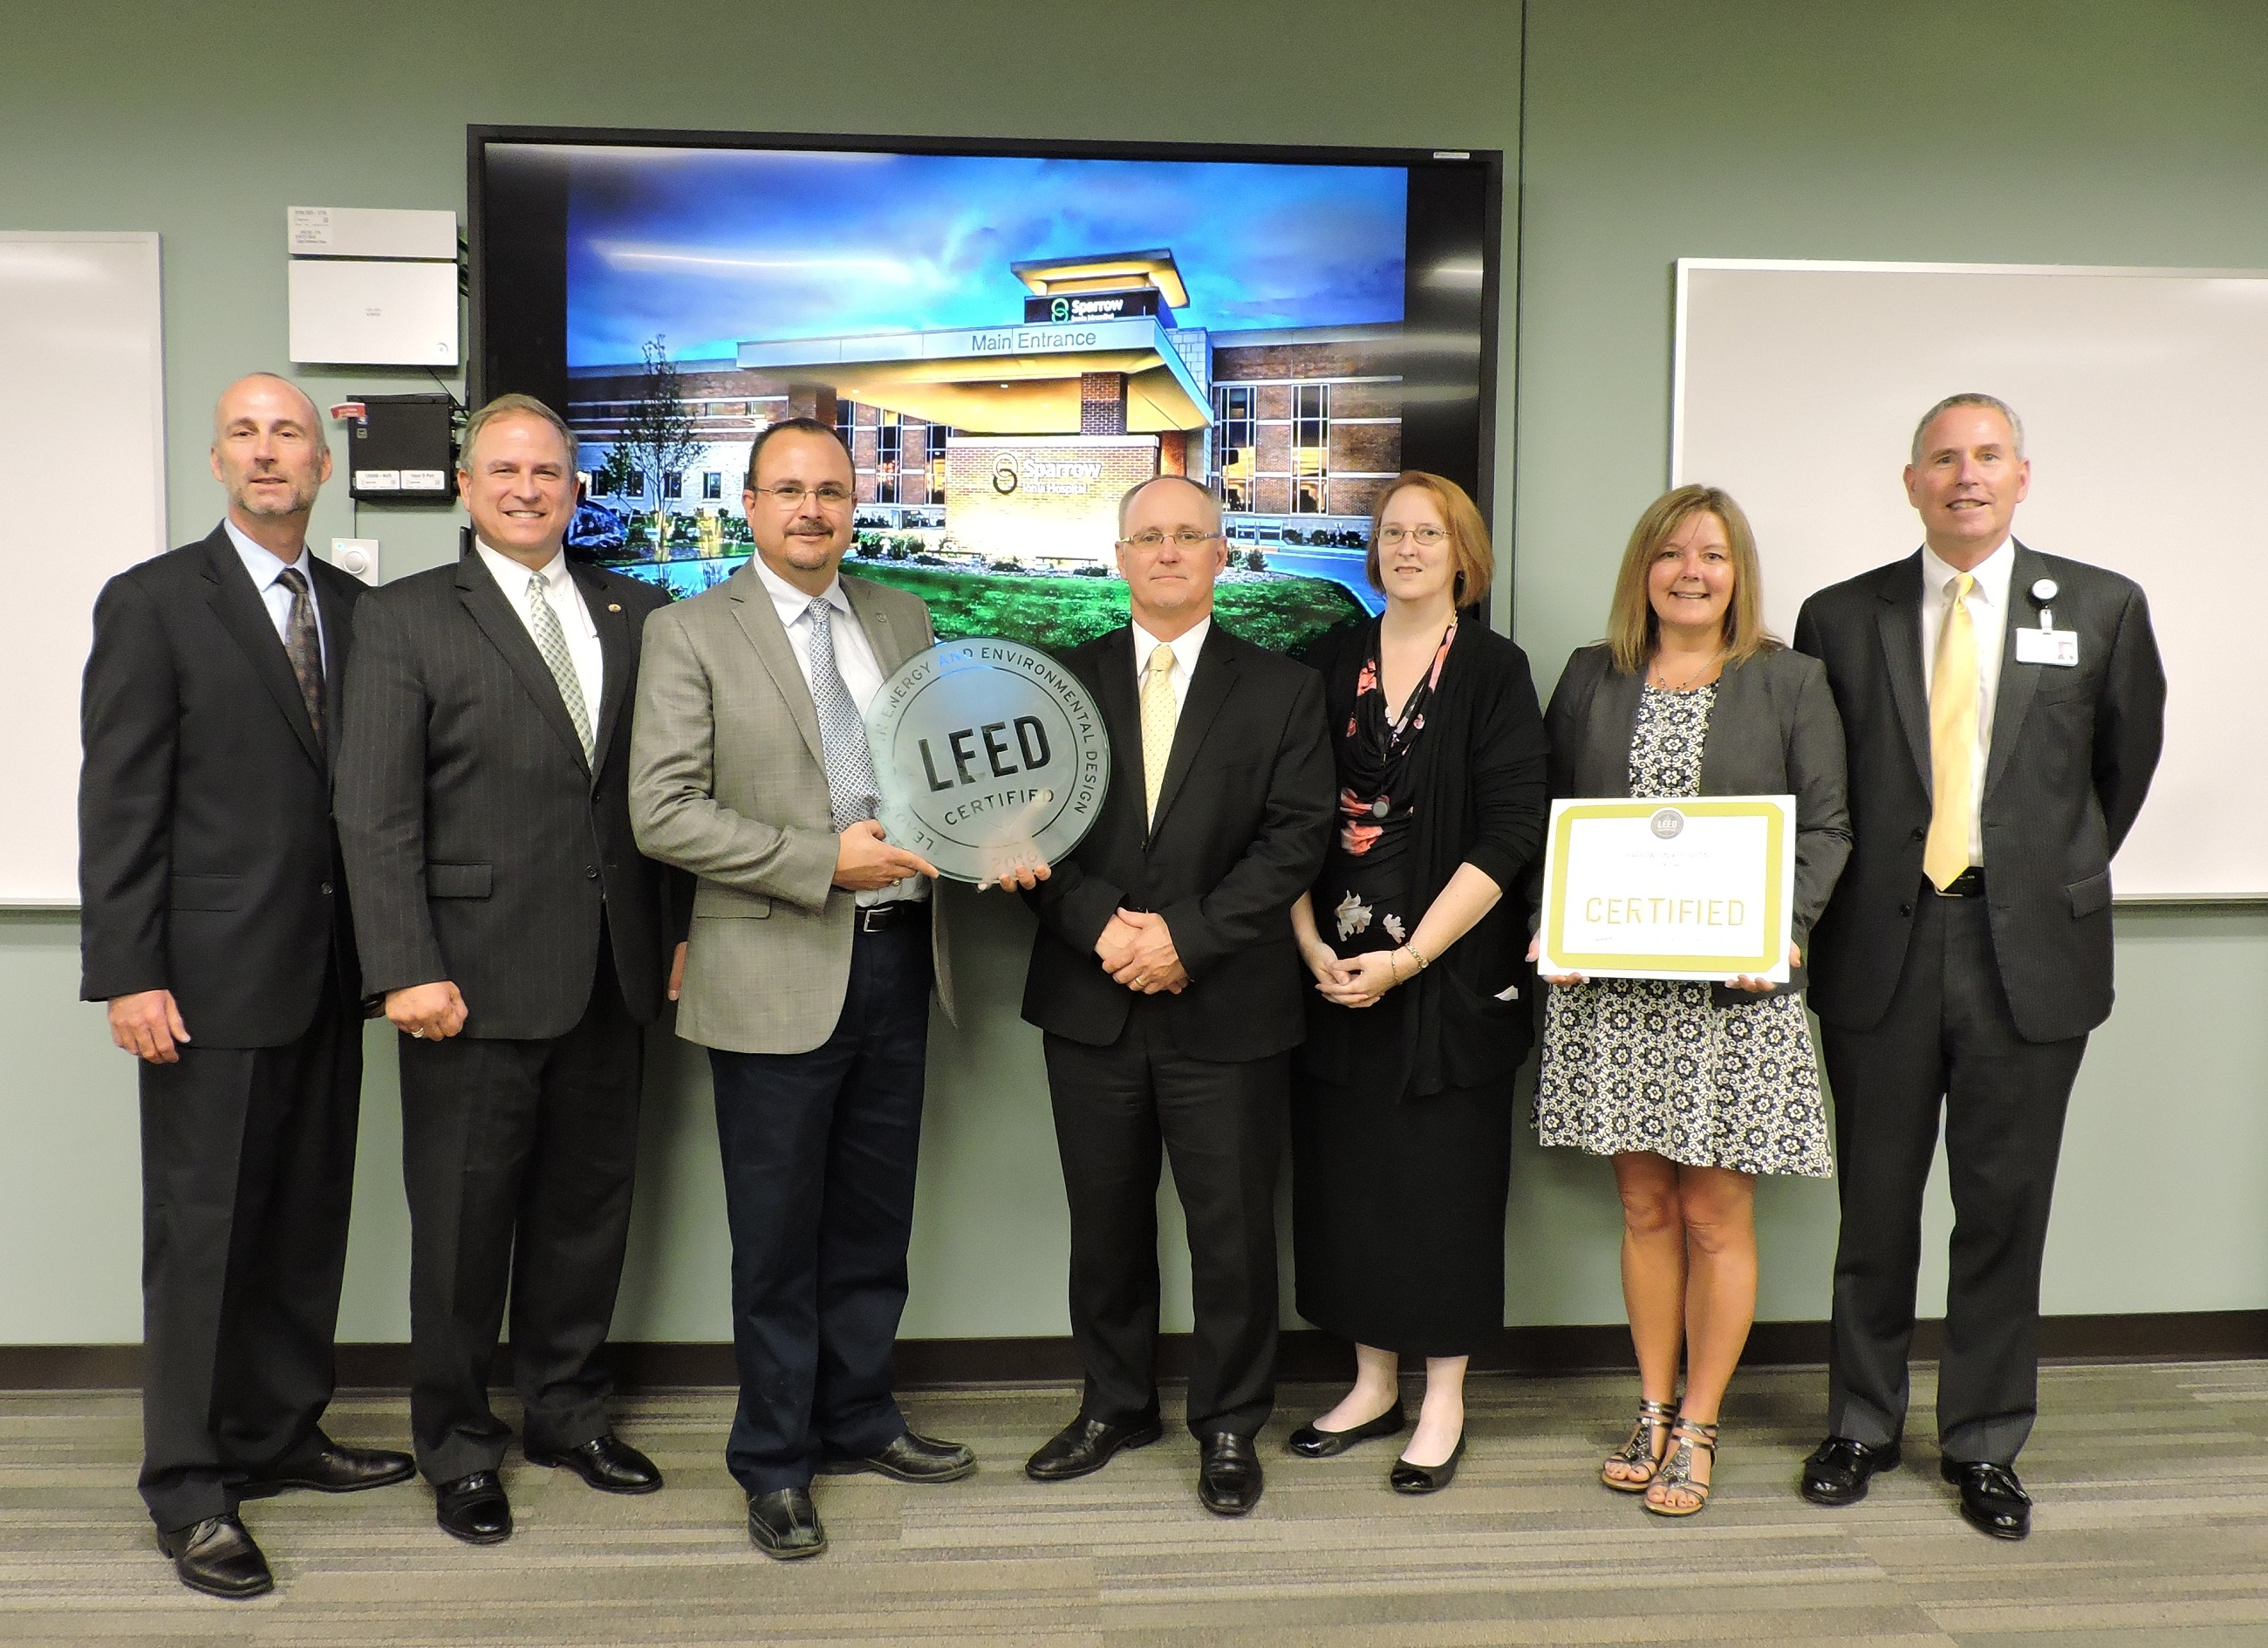 Sparrow Ionia Hospital Celebrates 1st Leed For Healthcare In Michigan